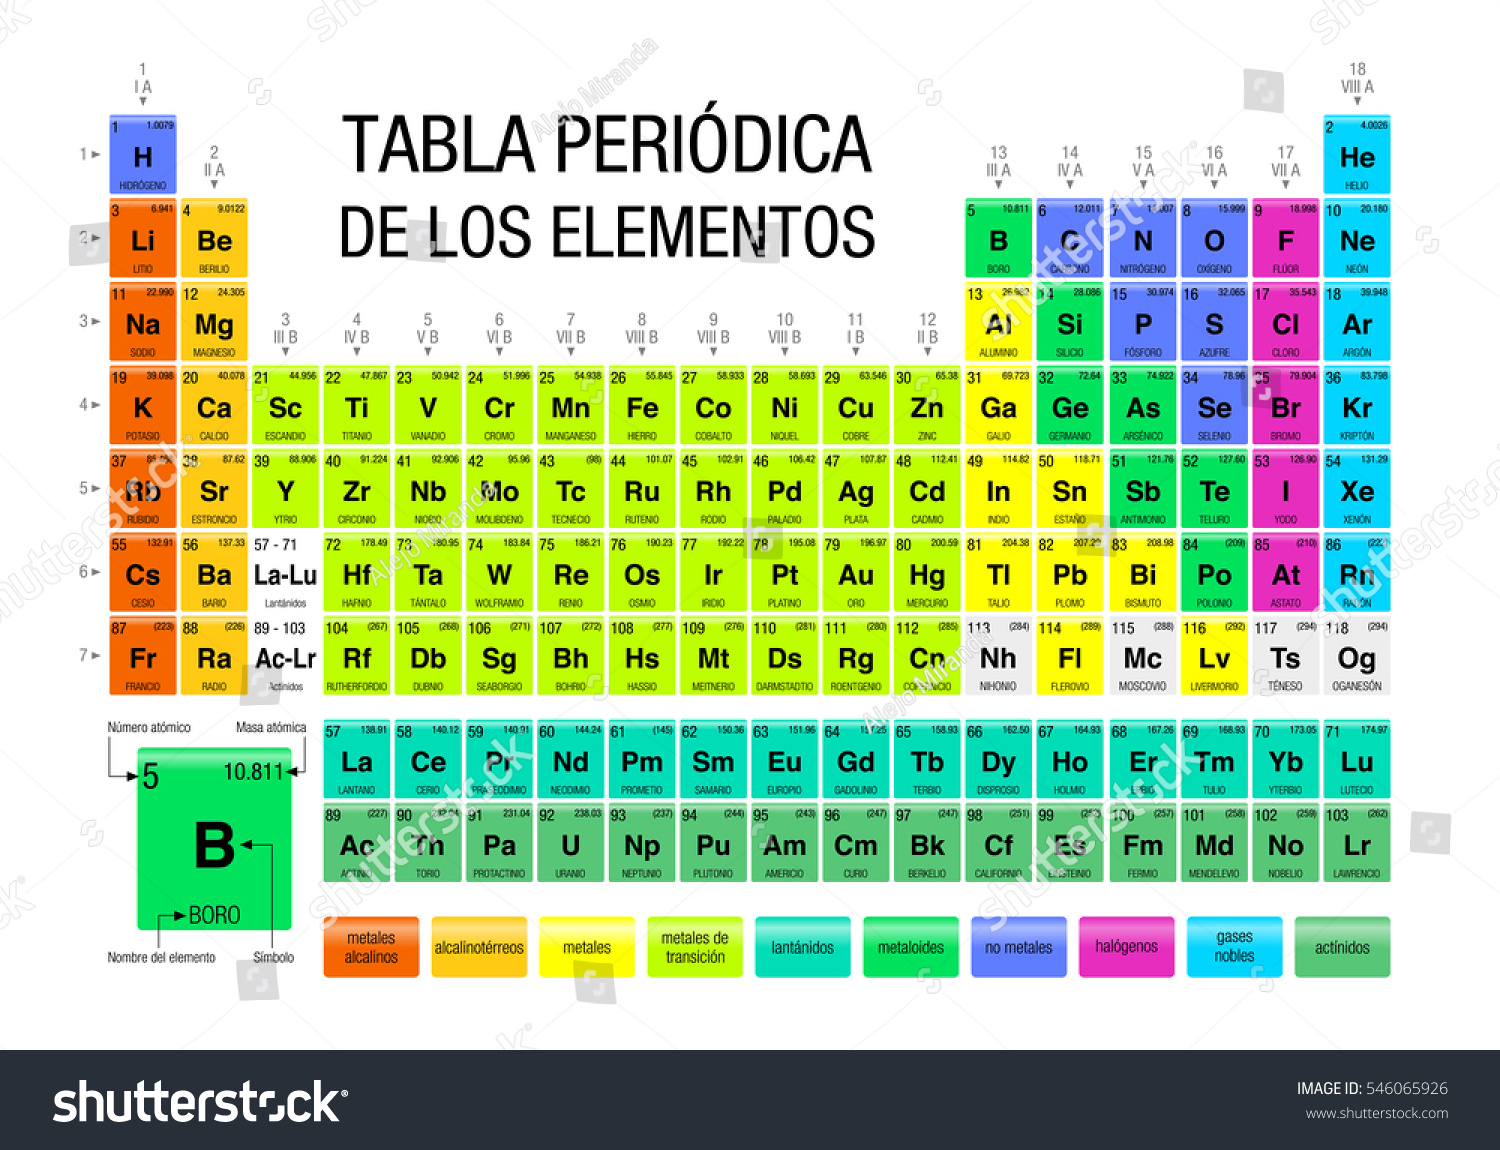 Tabla periodica de los elementos periodic vectores en stock tabla periodica de los elementos periodic table of elements in spanish language with the urtaz Choice Image